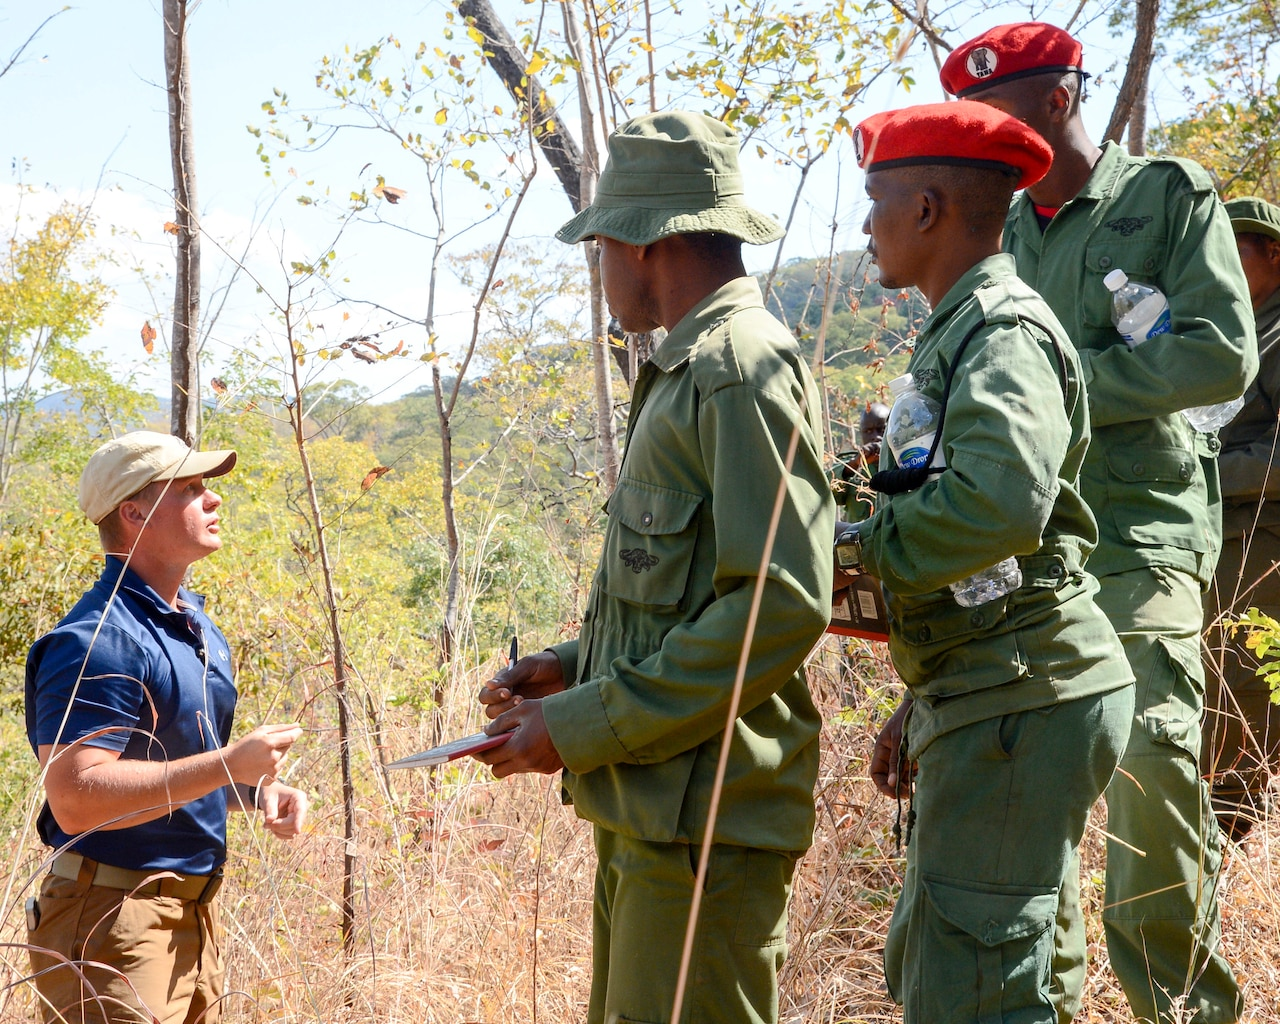 Army Maj. Kevin Jusza, with the 404th Civil Affairs Battalion, assigned to Combined Joint Task Force Horn of Africa, provides guidance for Tanzania Wildlife Management Authority game wardens during a ground surveillance practical exercise in Ngwala, Tanzania, July 24, 2018. Navy photo by Petty Officer 2nd Class Timothy M. Ahearn